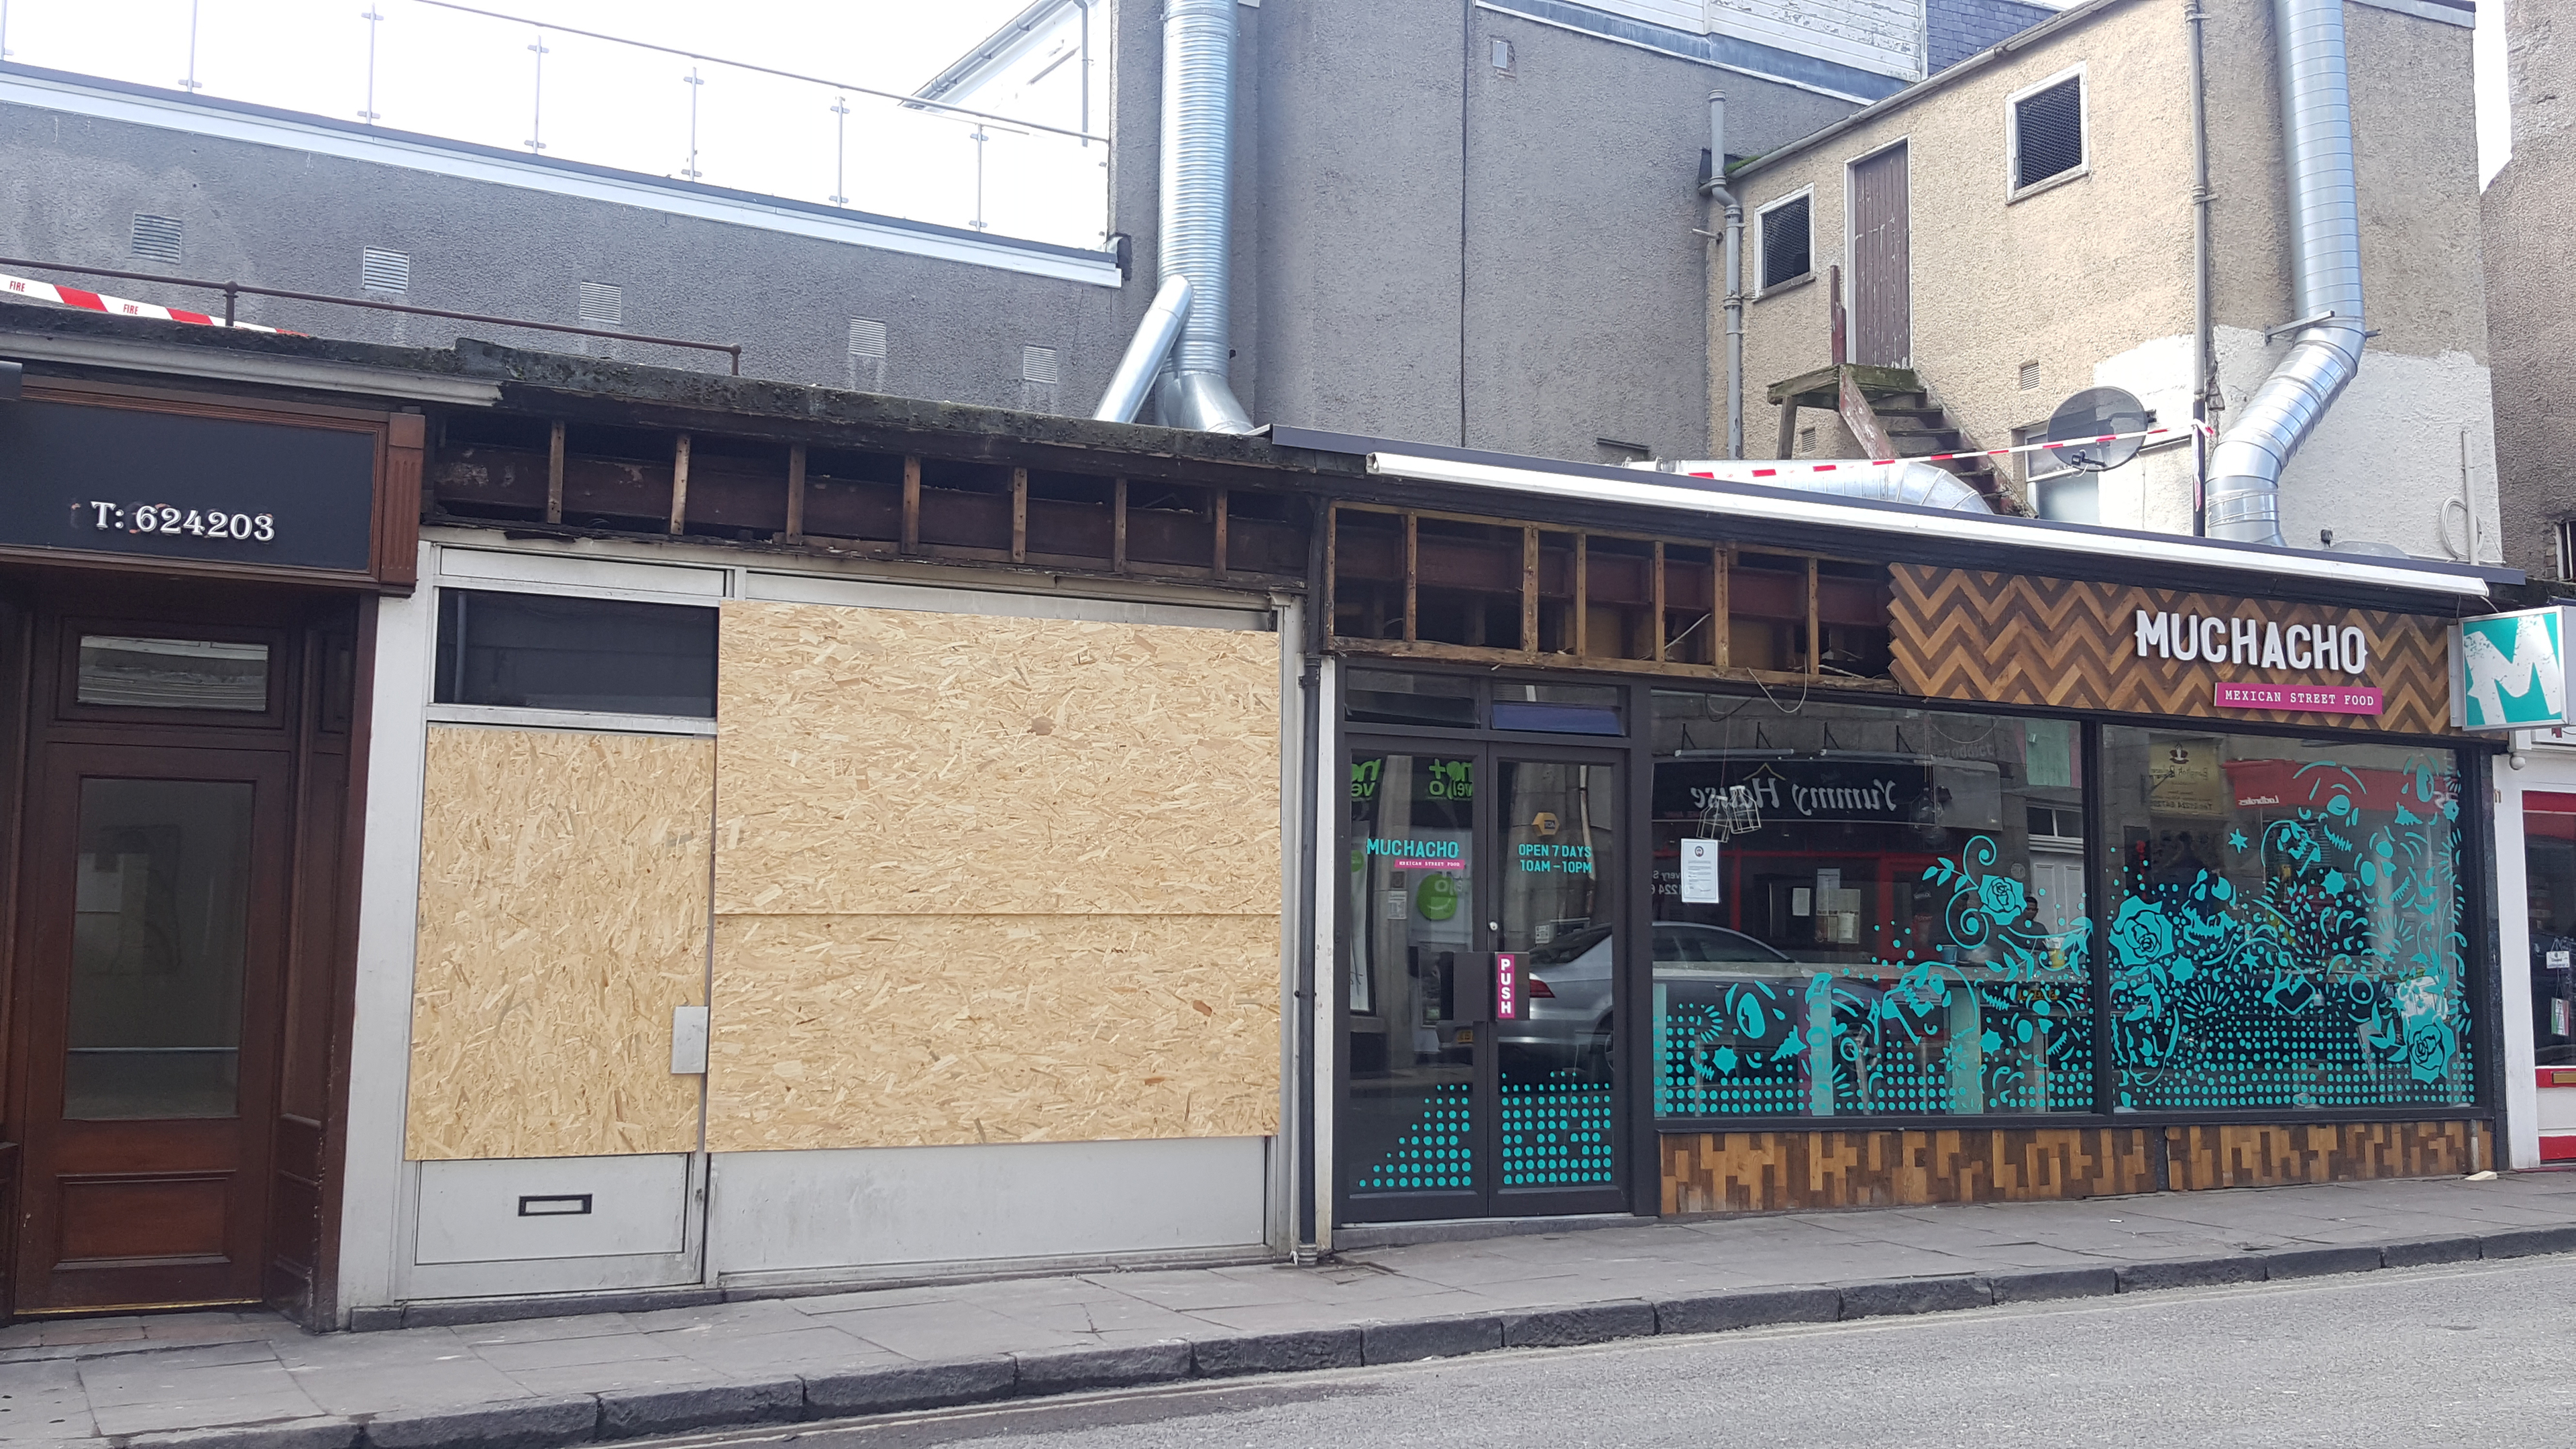 Muchacho is closed.